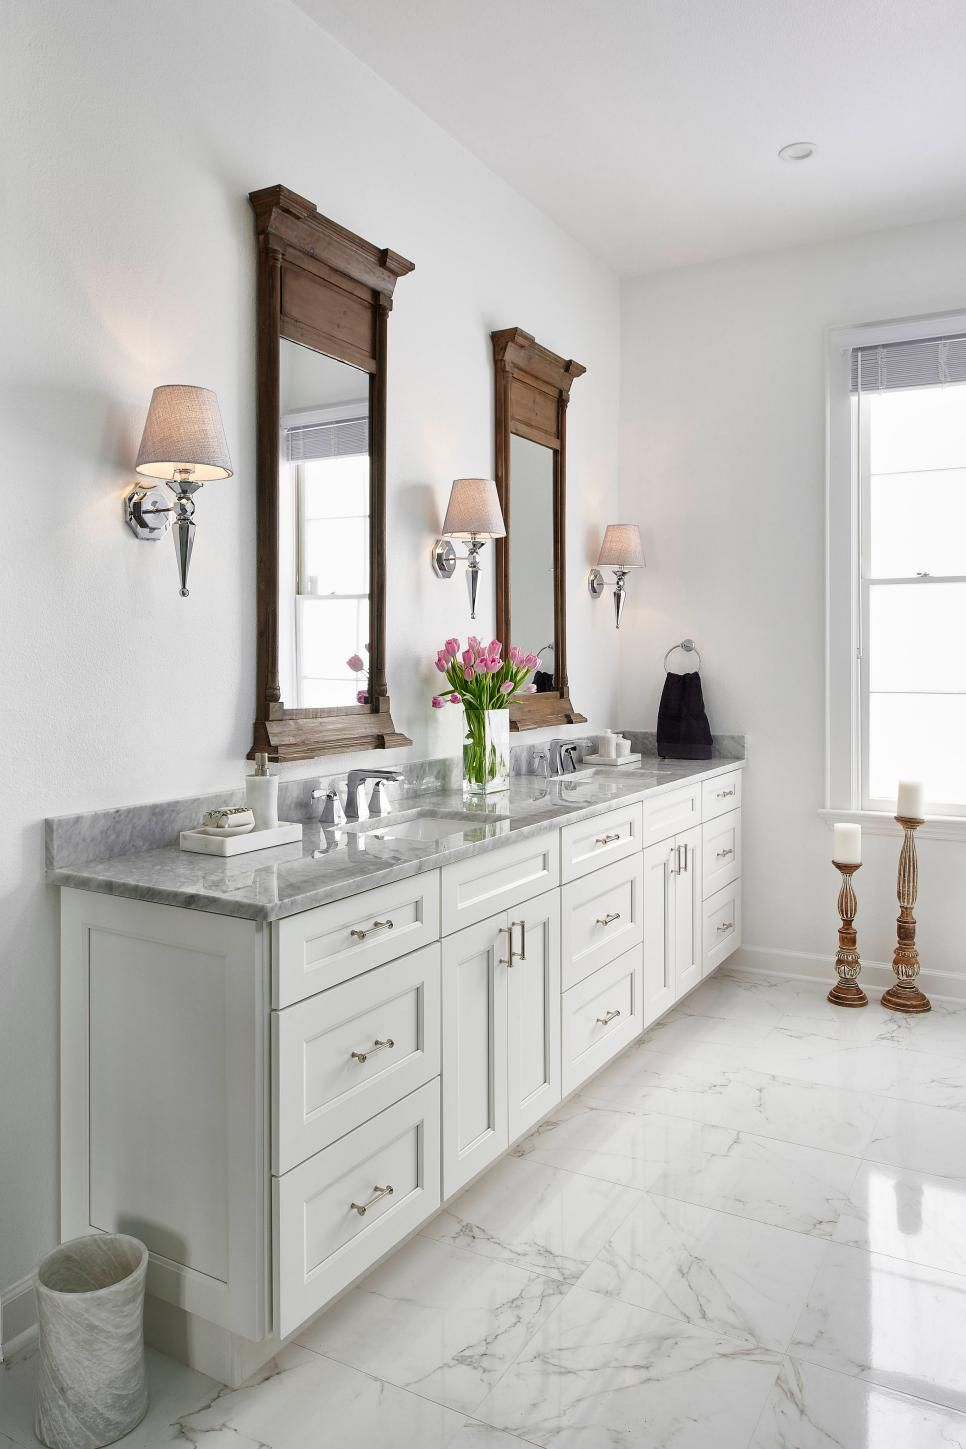 This Traditional White Master Bathroom Features Shaker Style Cabinetry With Carrara Marble Countertops Durable Porcelain Tile Floors Mimic The